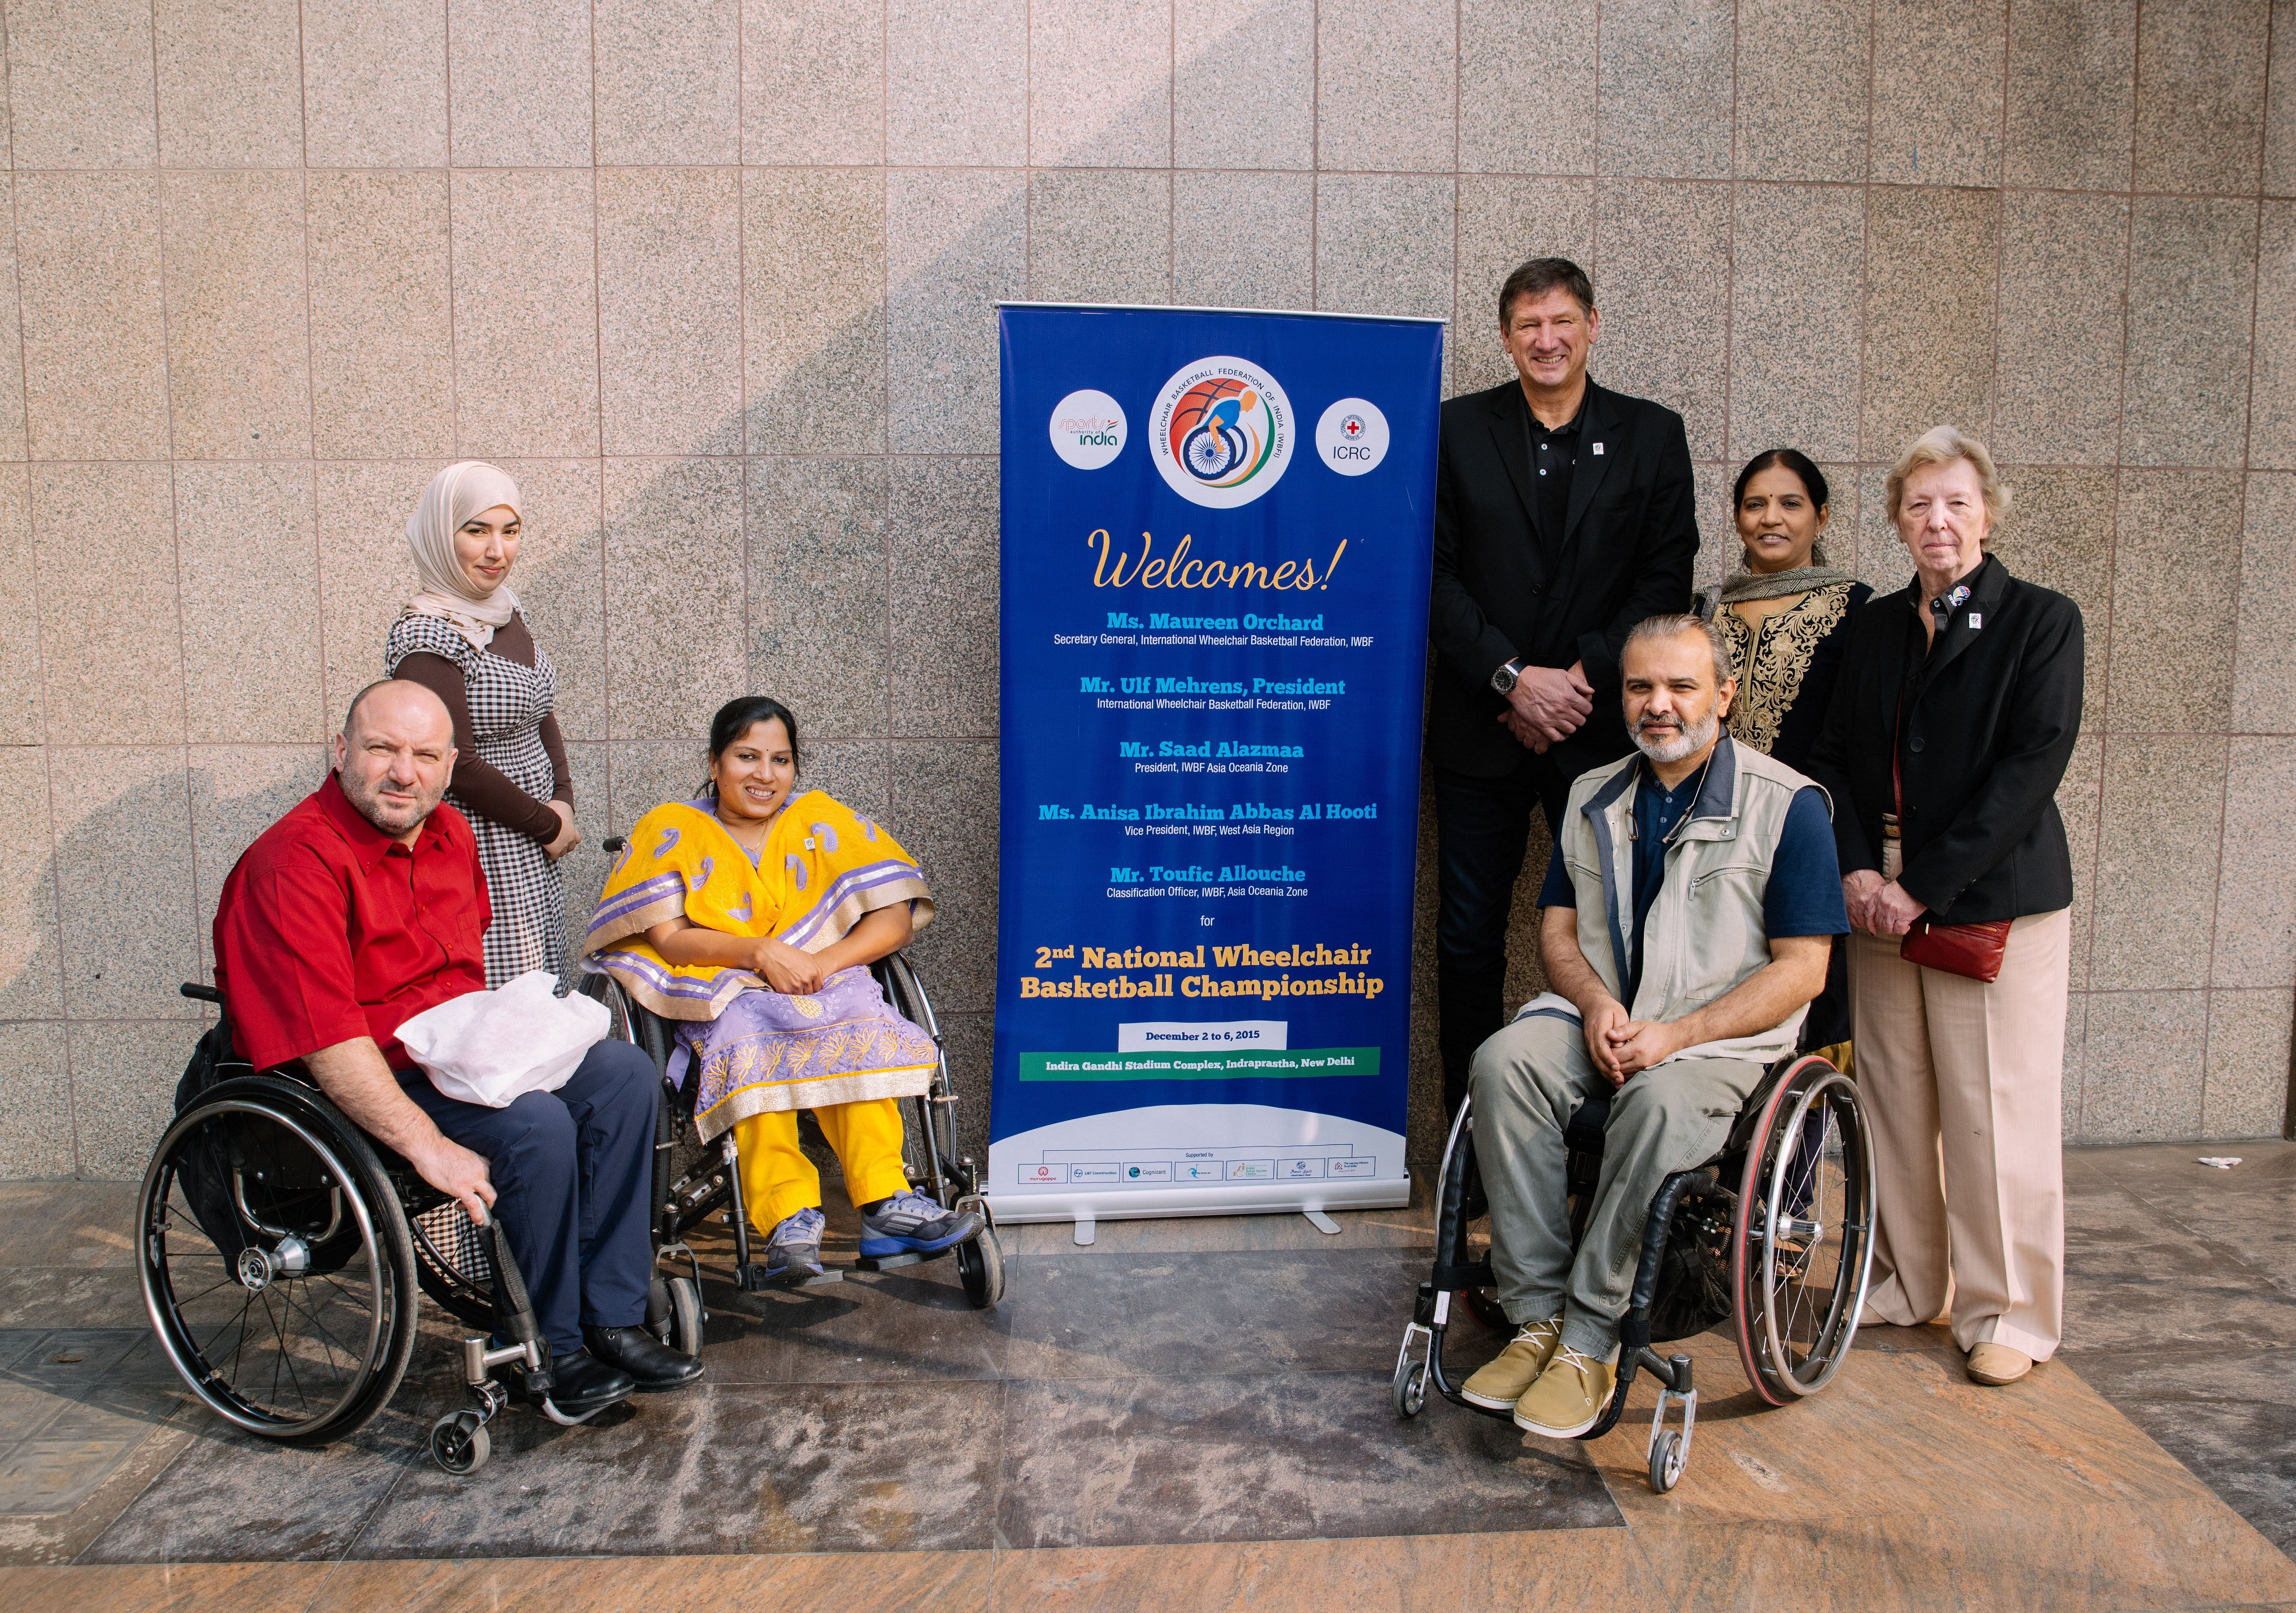 The Wheelchair Basketball Community at the Second National tournament, held at Delhi in December 2015.